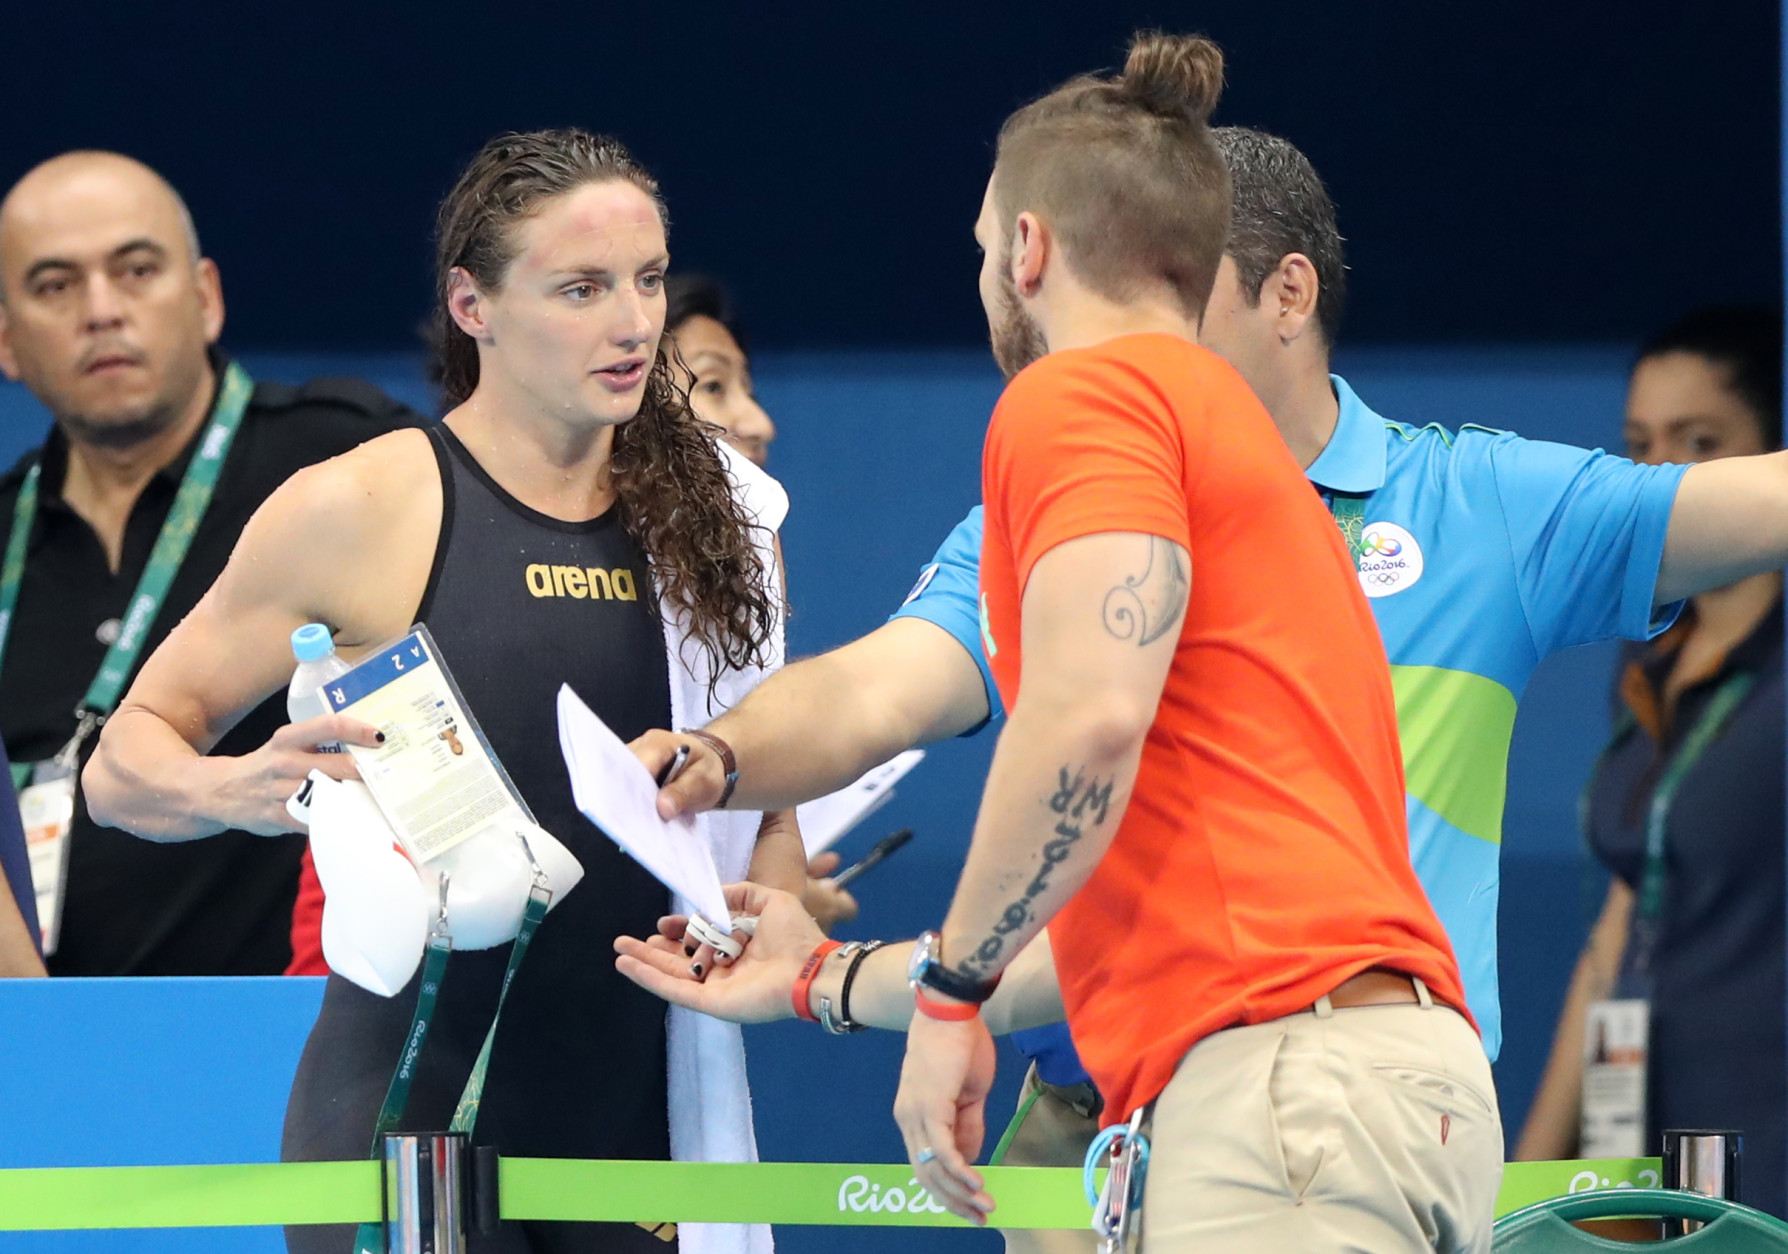 Hungary's Katinka Hosszu and her husband and coach Shane Tusup after a heat of the women's 100-meter backstroke during the swimming competitions at the 2016 Summer Olympics, Sunday, Aug. 7, 2016, in Rio de Janeiro, Brazil. (AP Photo/Lee Jin-man)